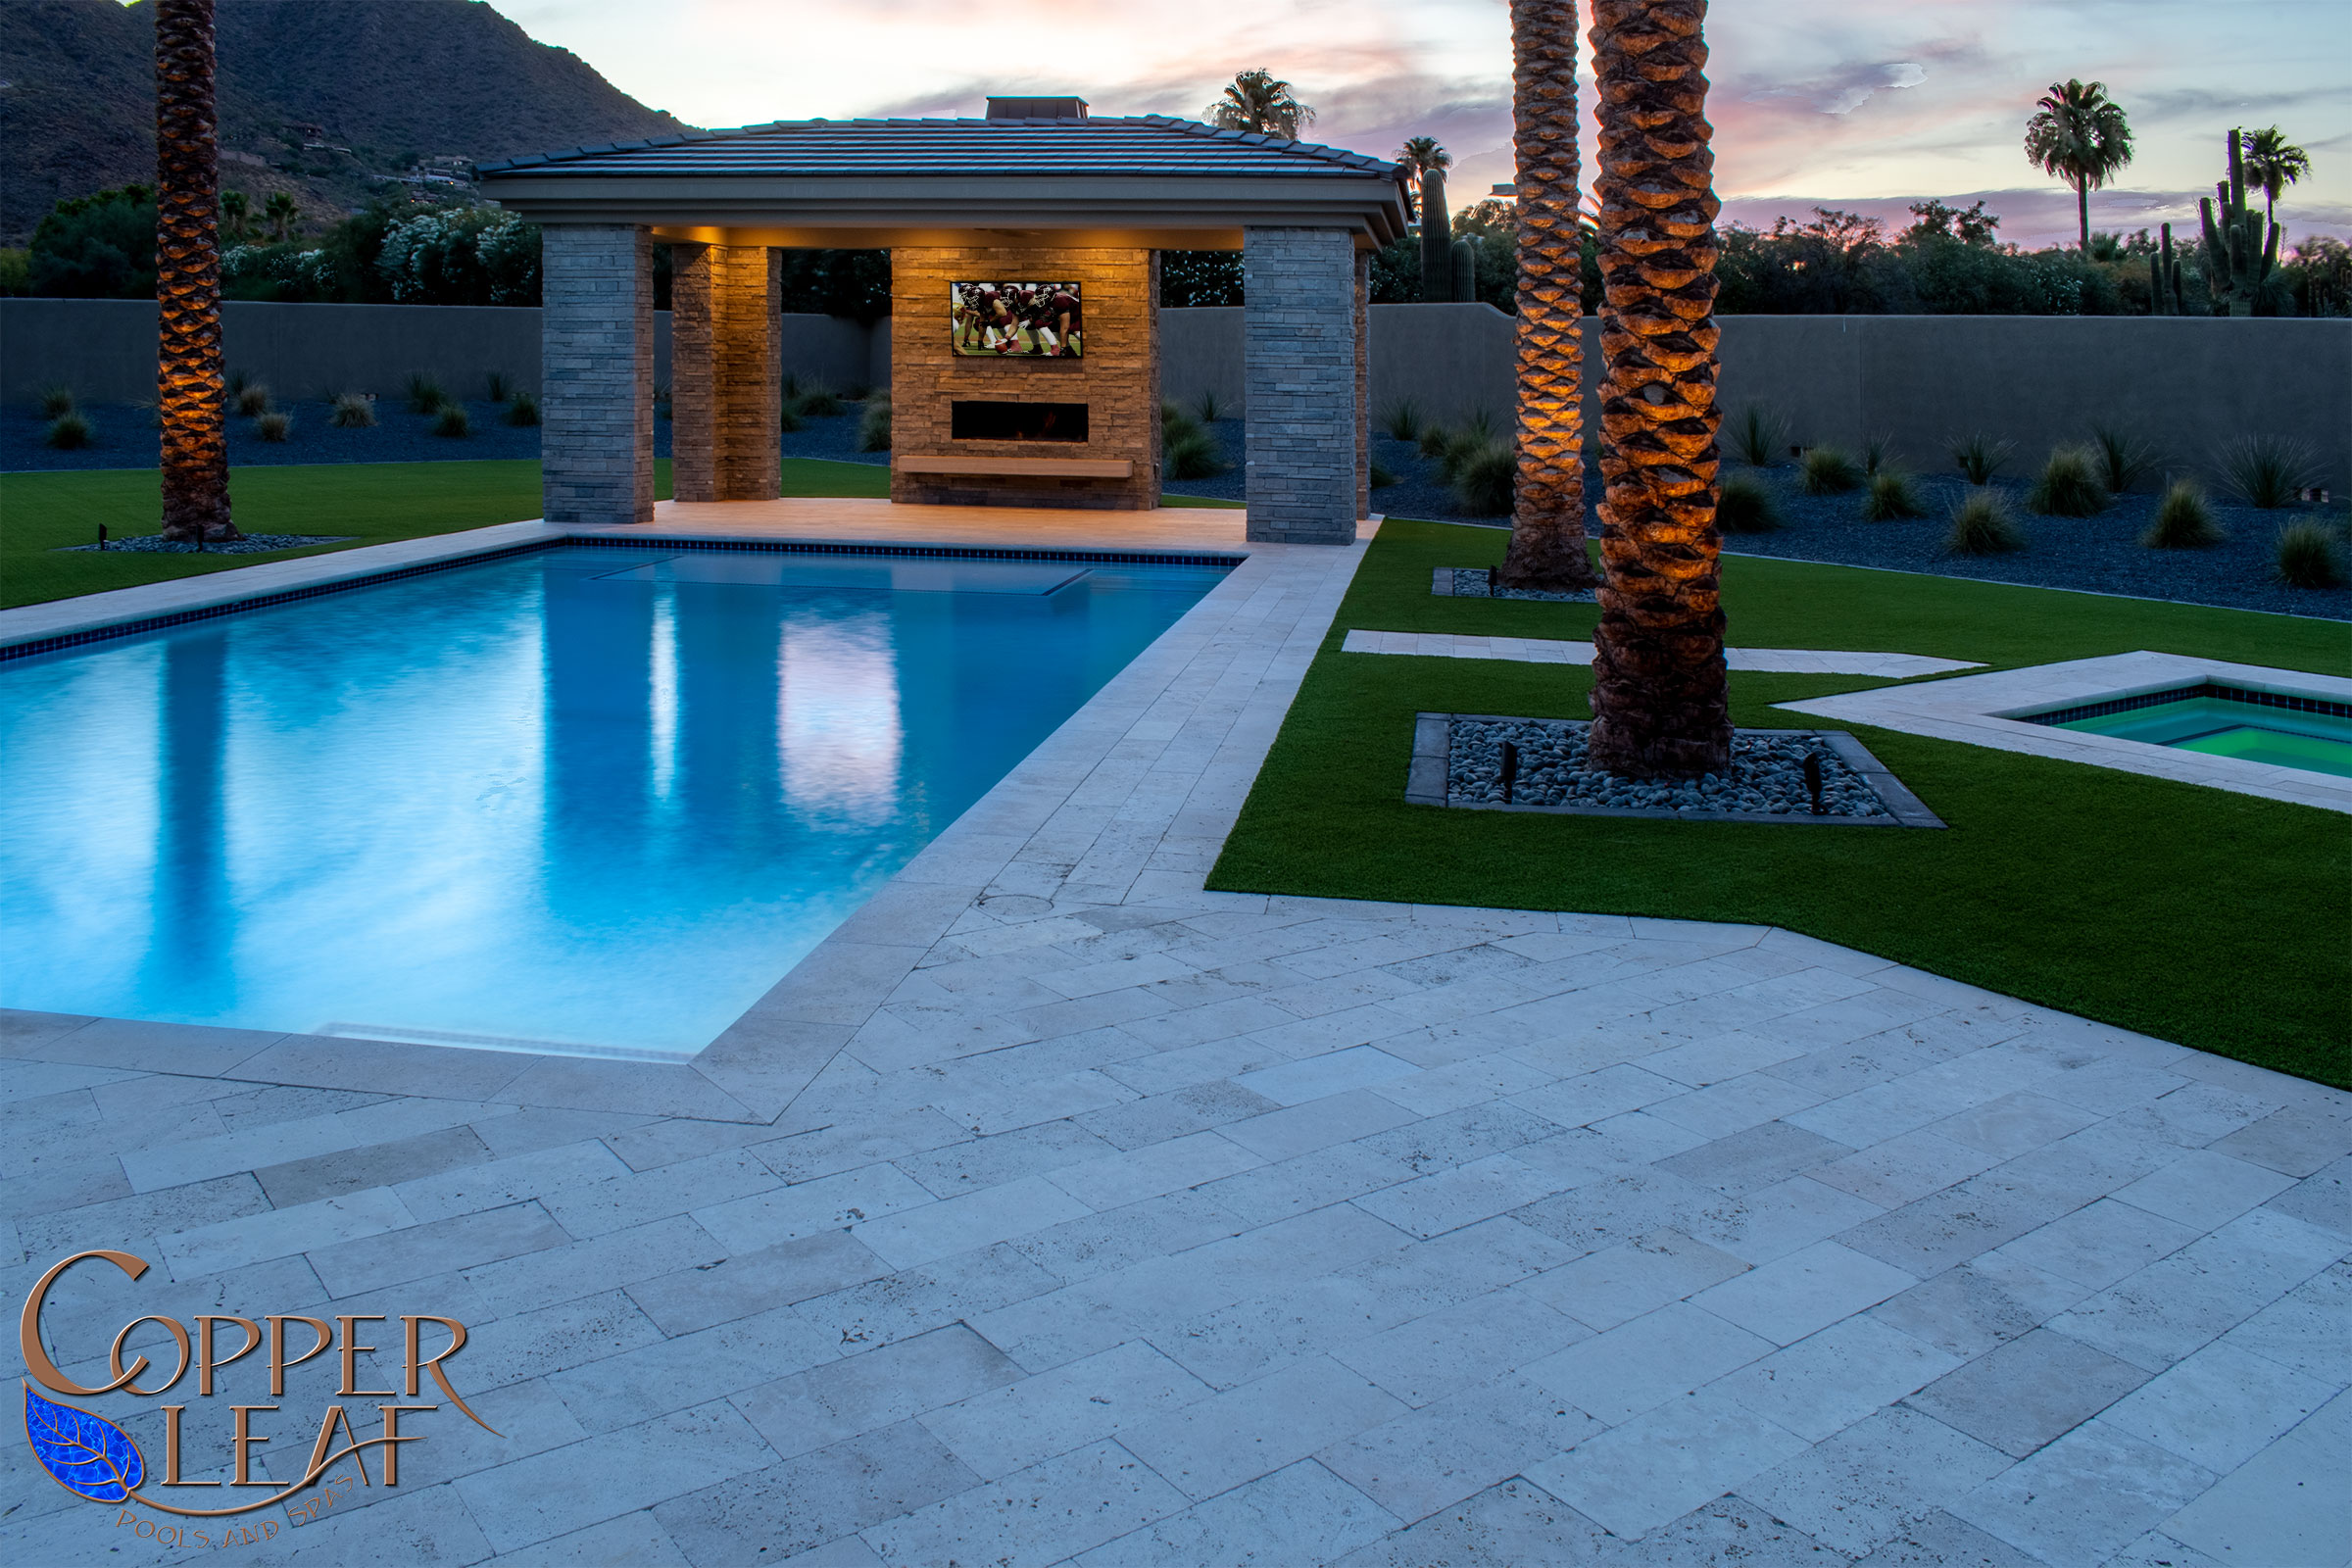 Synthetic grass surrounds the travertine pavers.